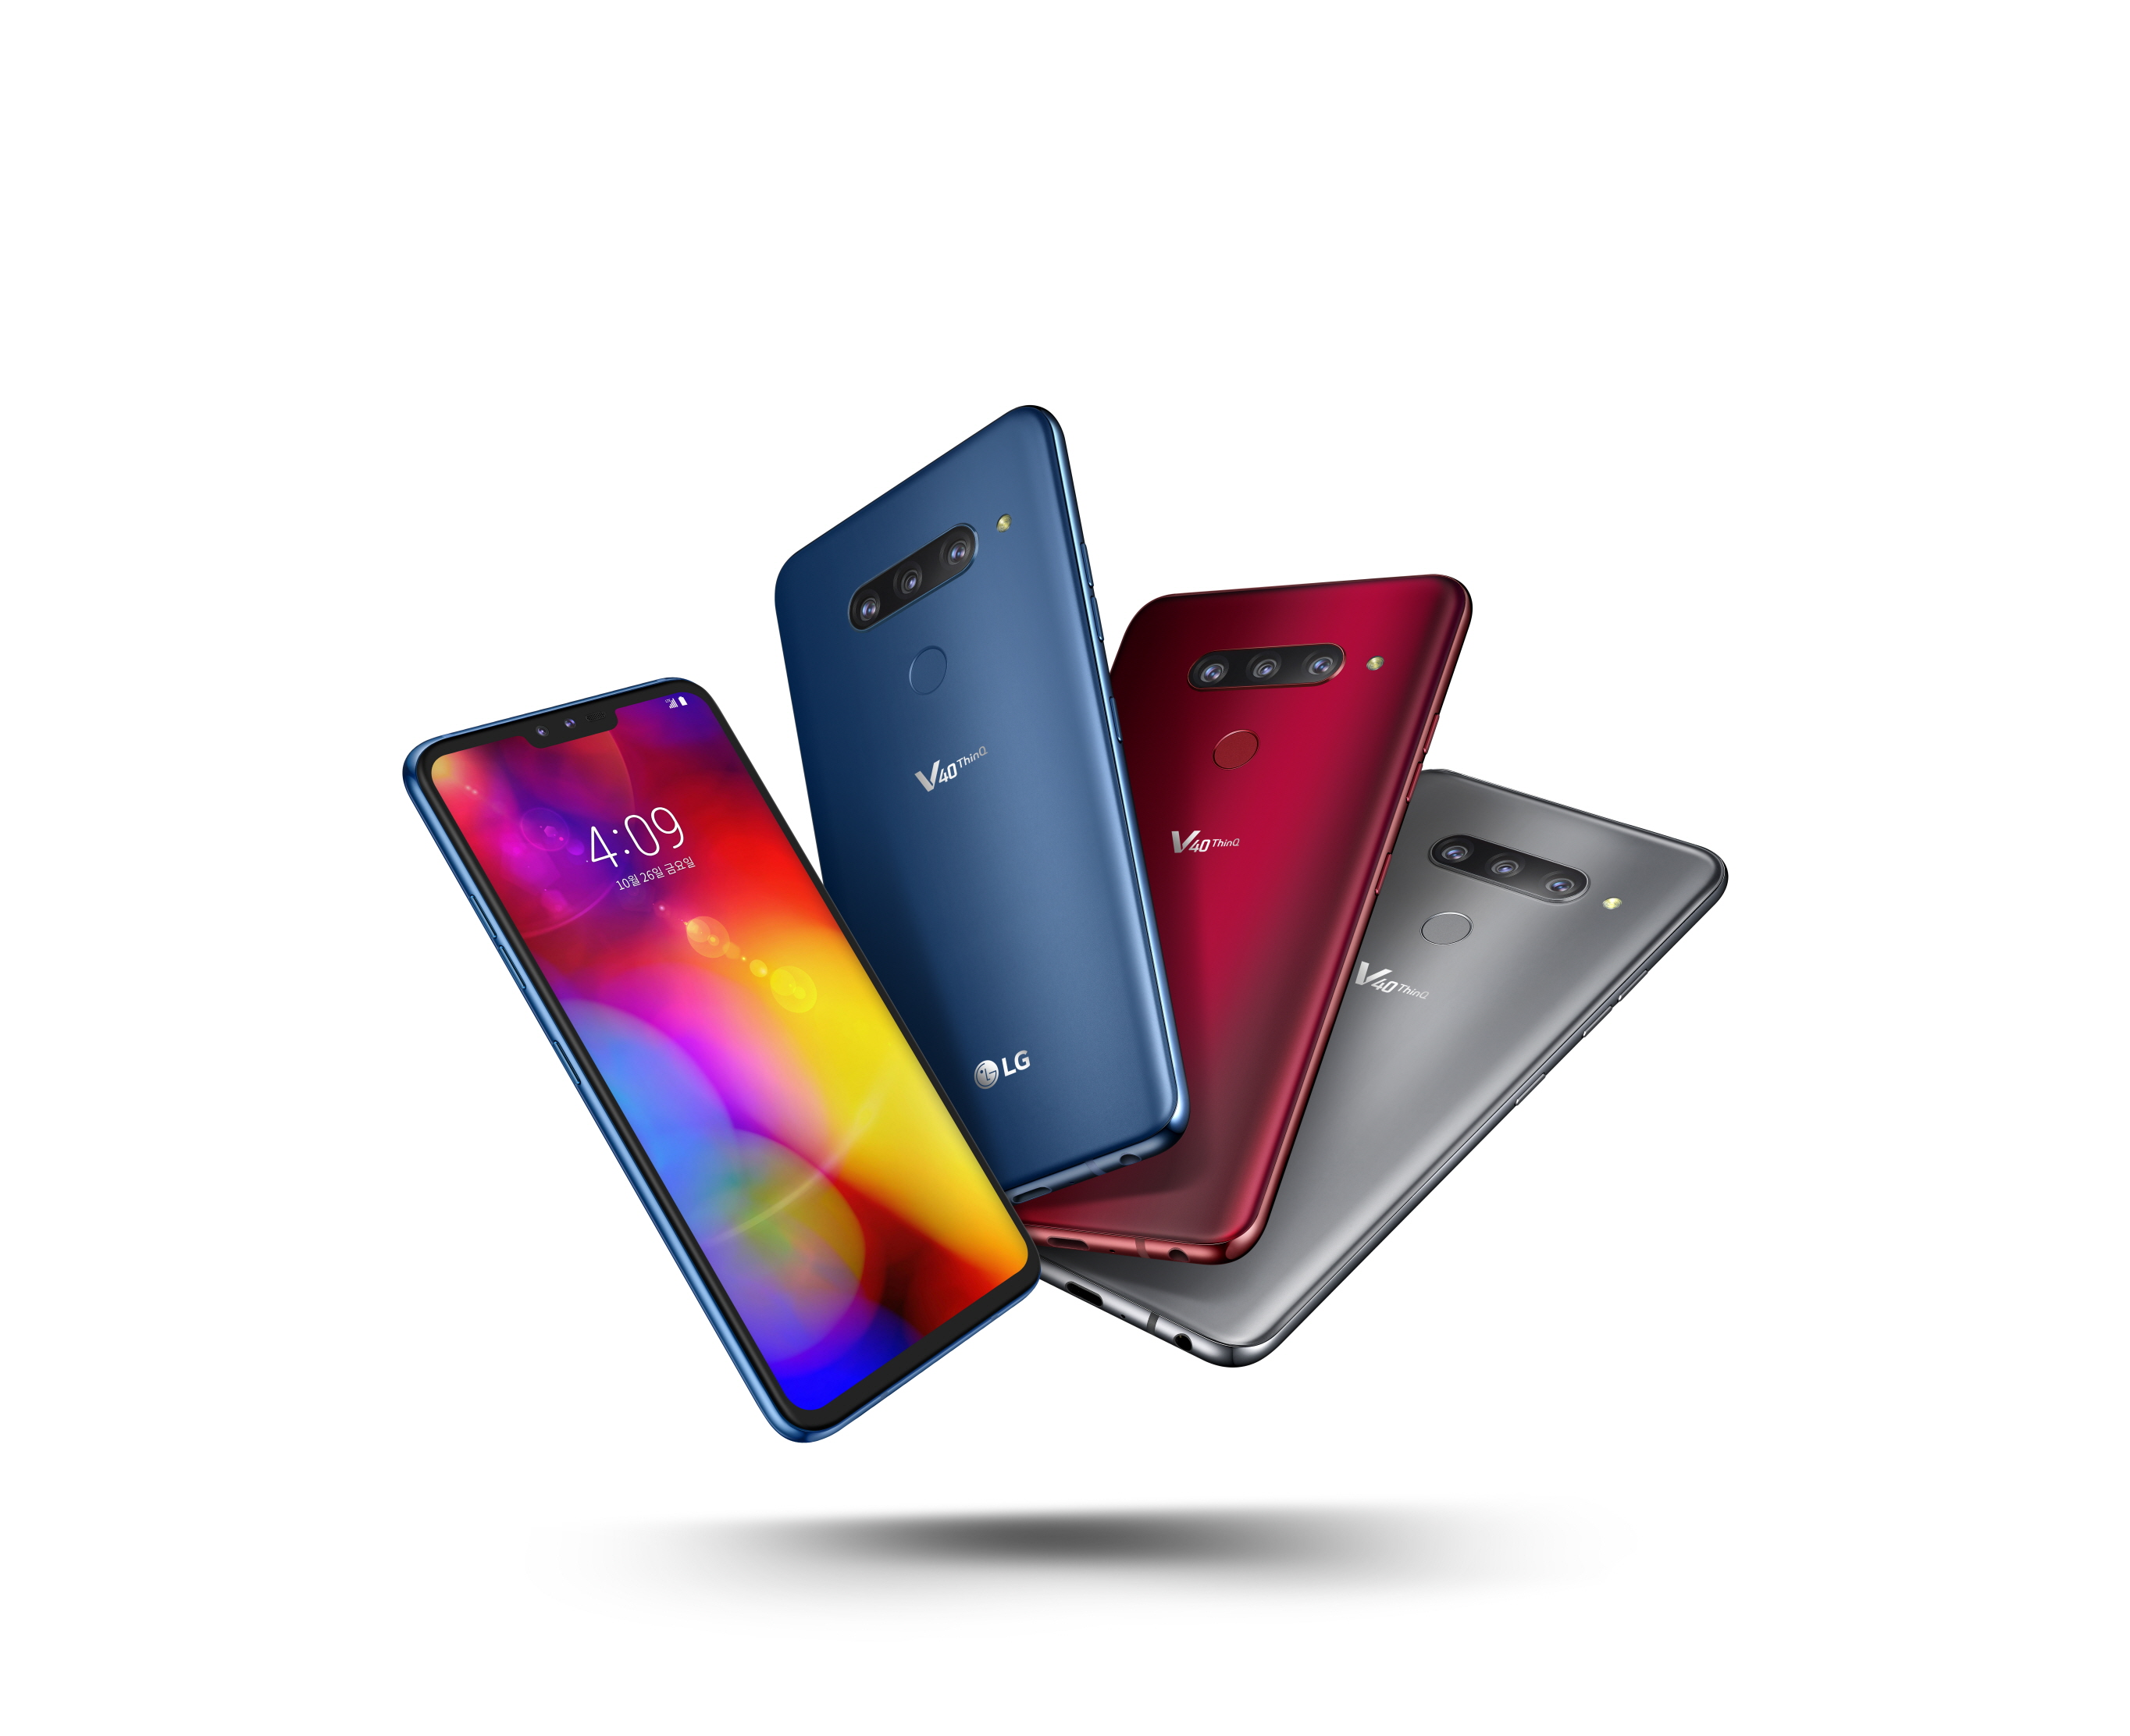 Smartphone, Feature phone, LG G7 ThinQ, LG Electronics, , LG ThinQ, Camera, Photograph, LG사이언스파크, Camera lens, feature phone, mobile phone, gadget, product, communication device, feature phone, technology, smartphone, portable communications device, electronic device, magenta